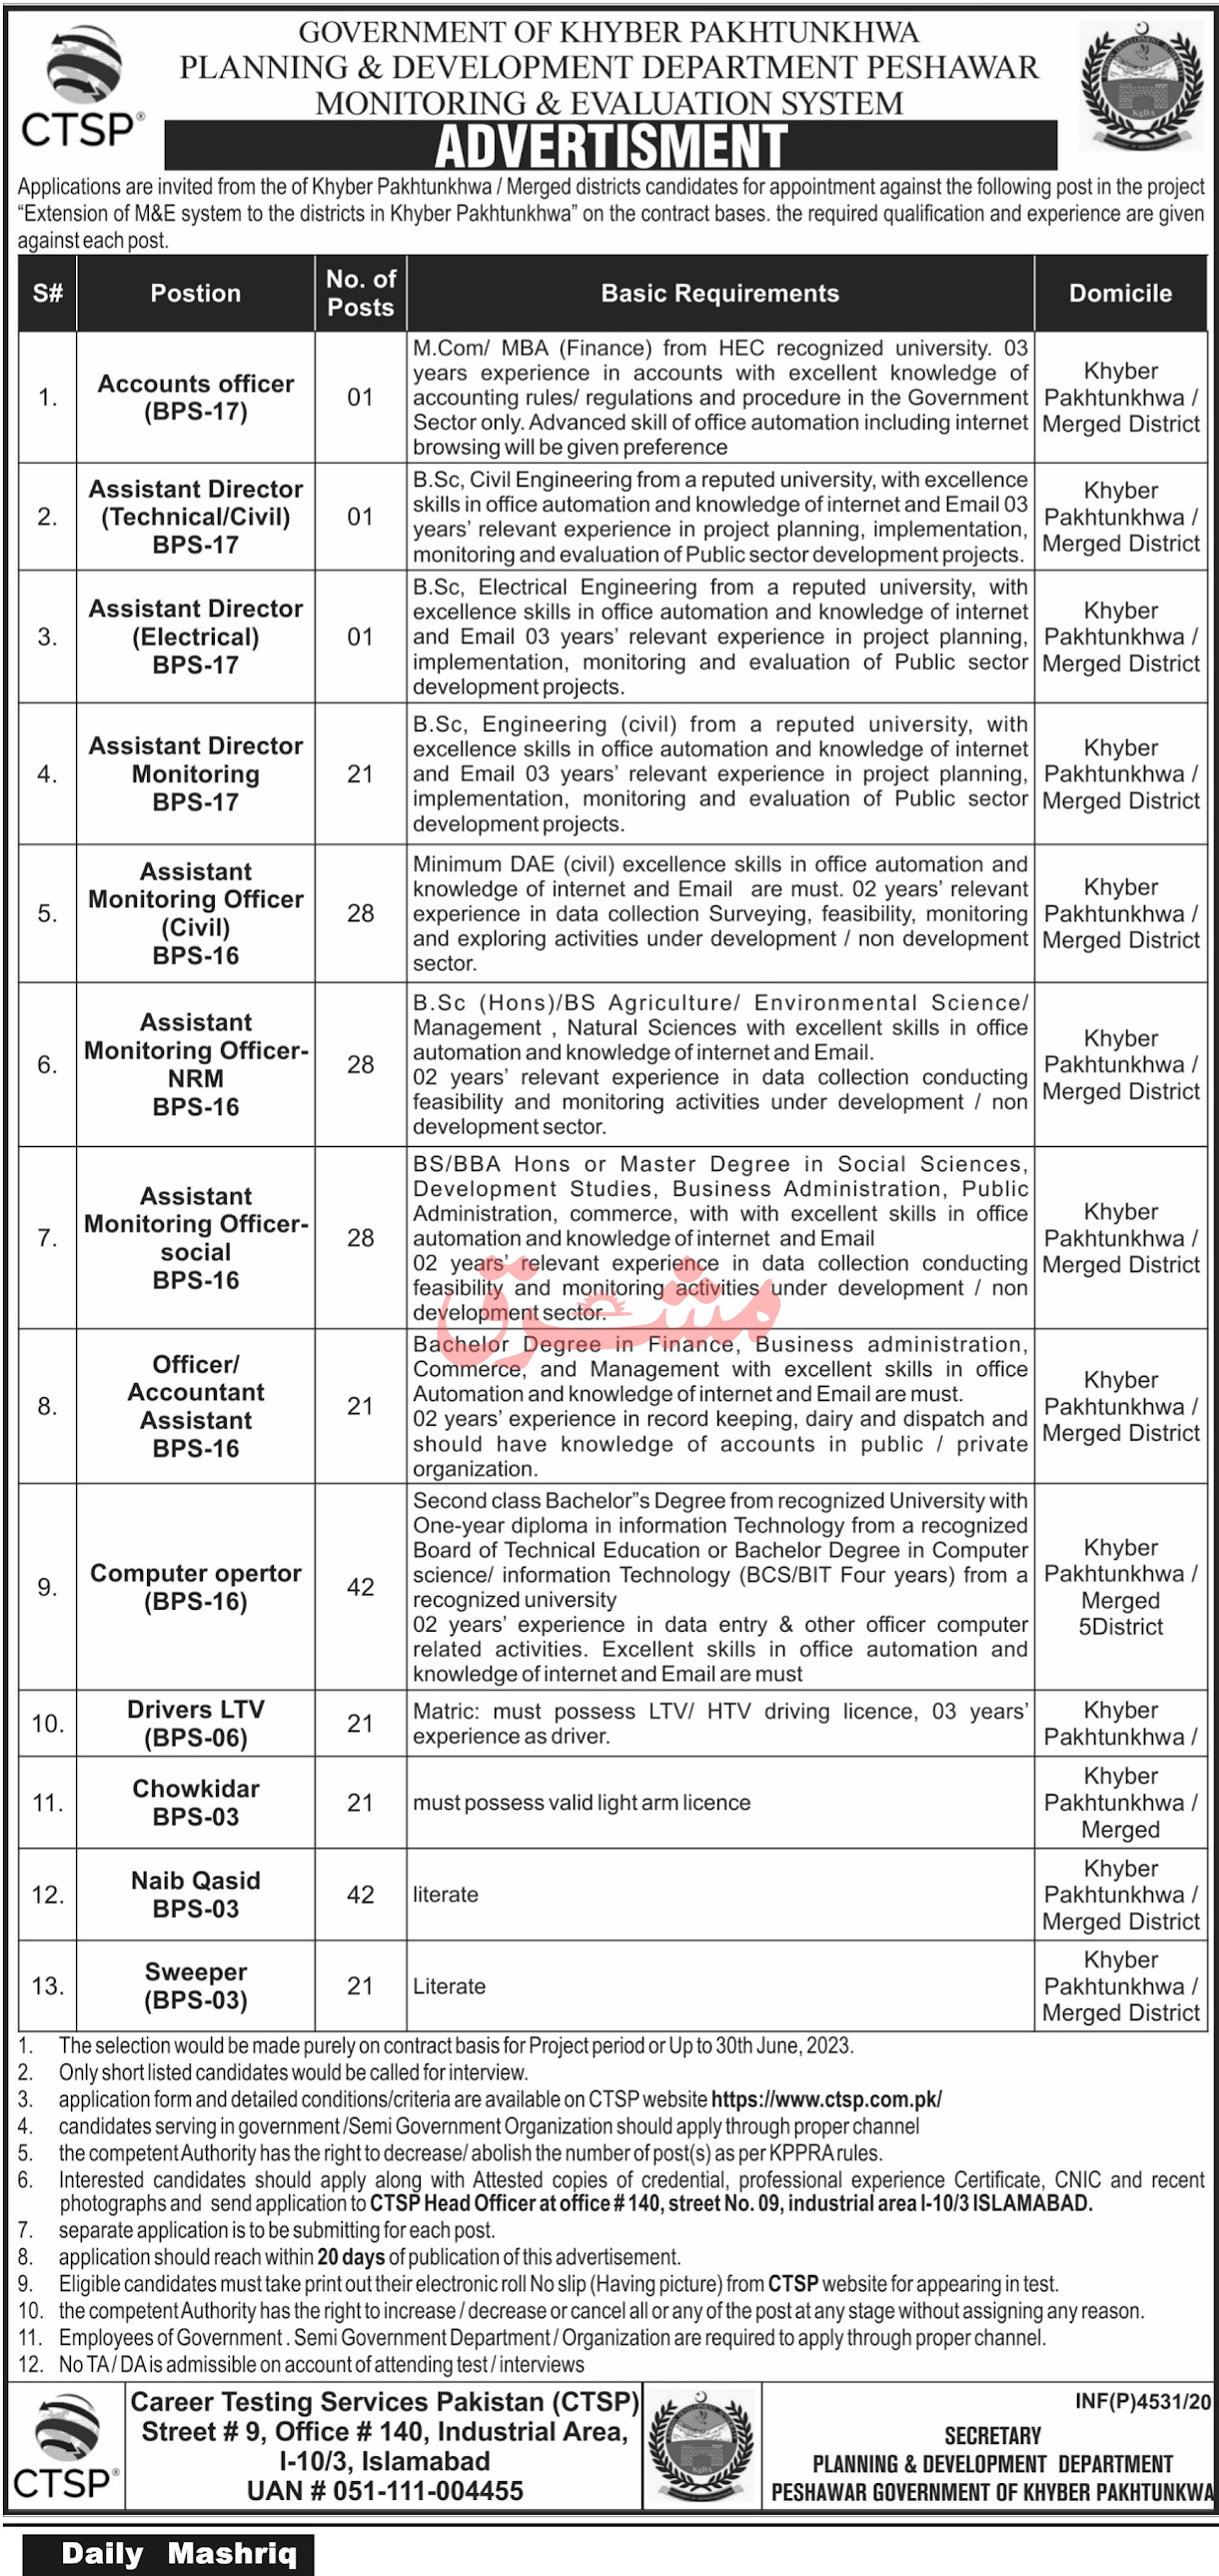 Government of Khyber Pakhtunkhwa Planning & Development Department Peshawar Jobs November 2020 (276 Posts)